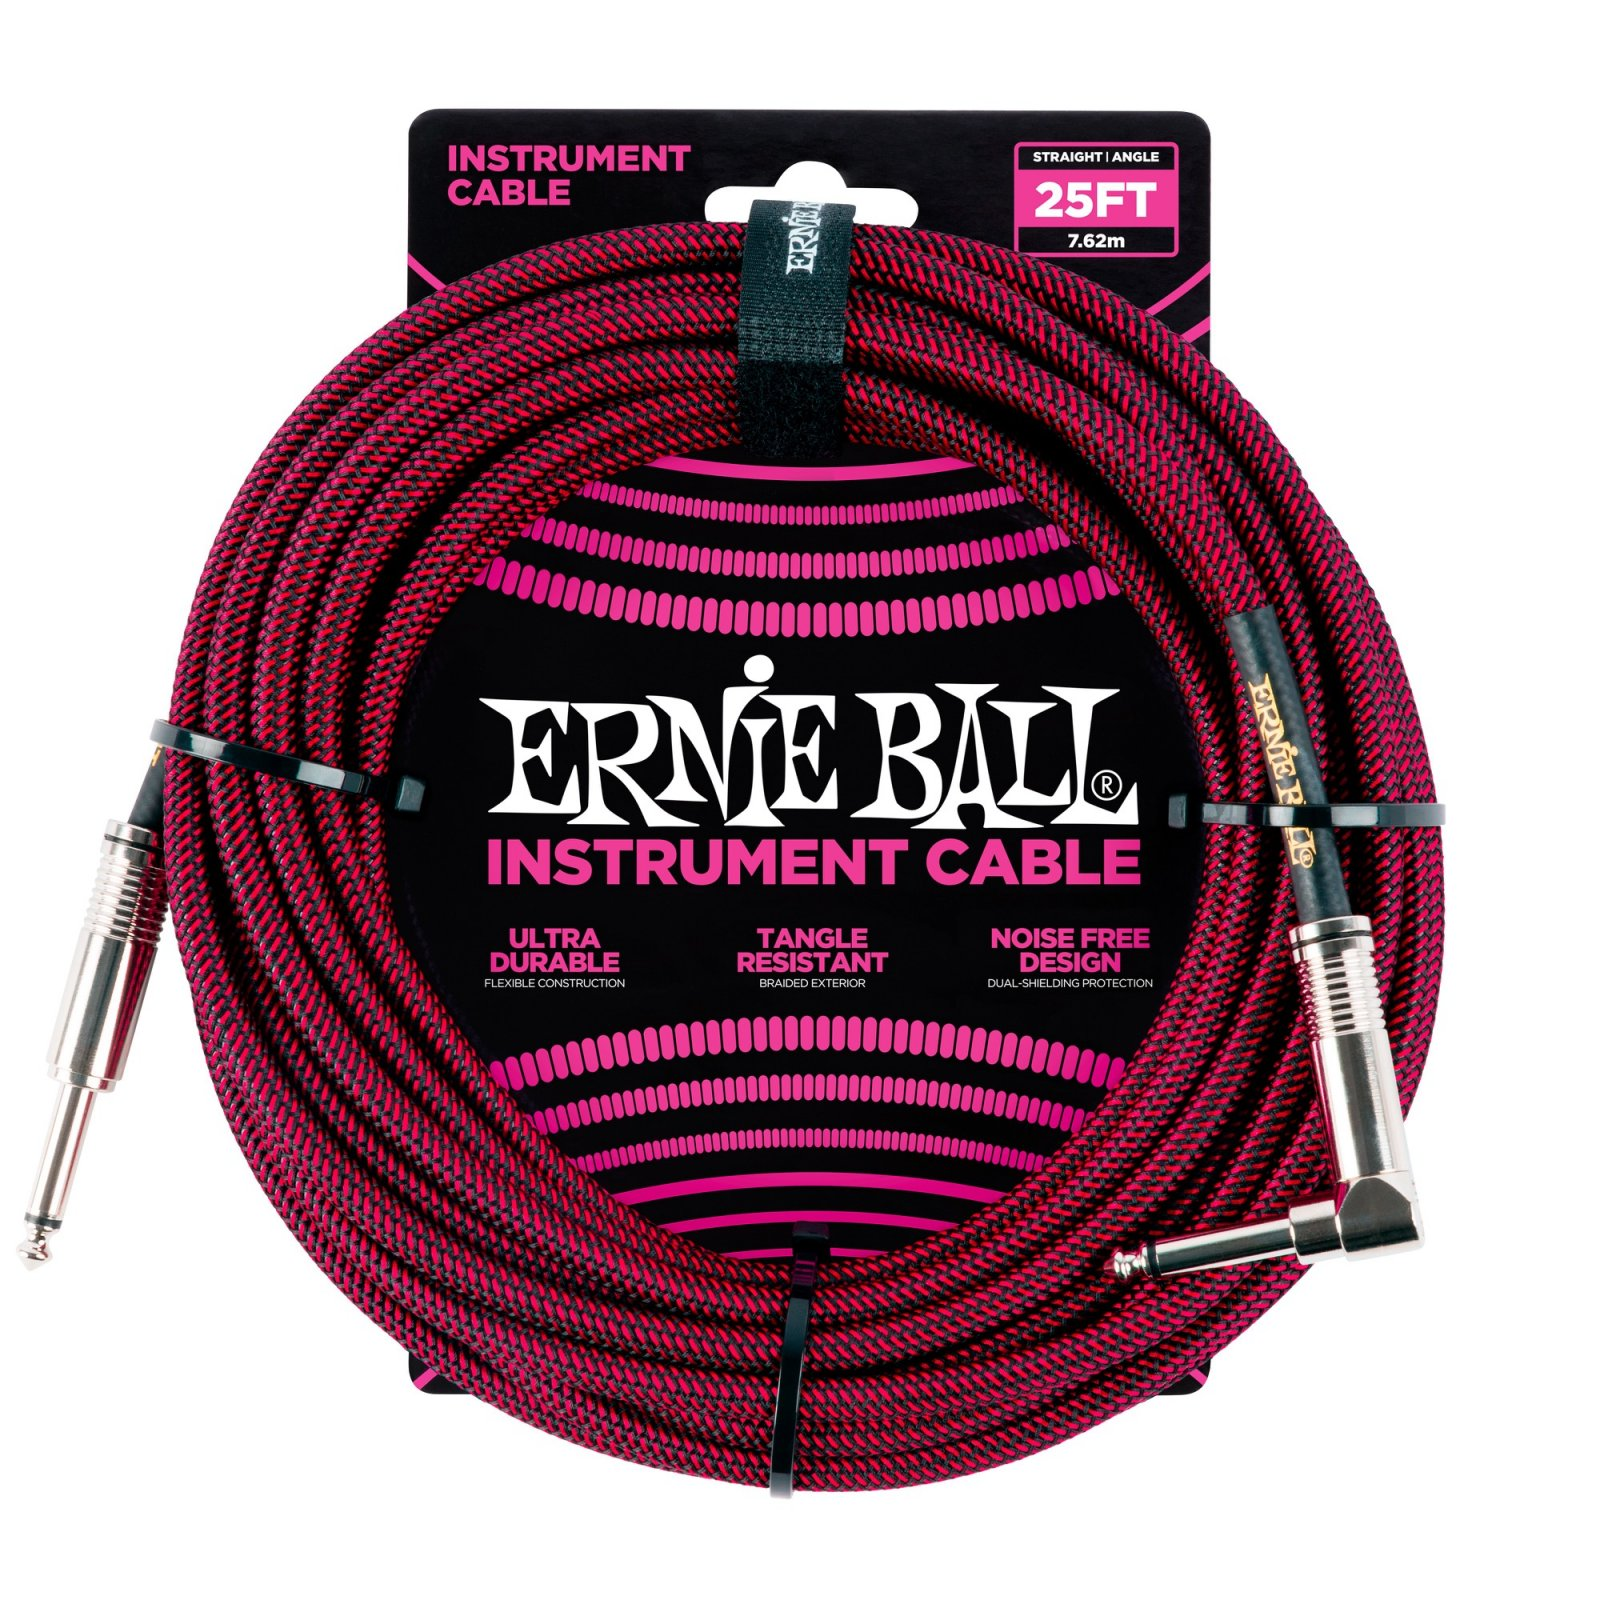 Ernie Ball  Braided Instrument cable  Blk/Rd 25'